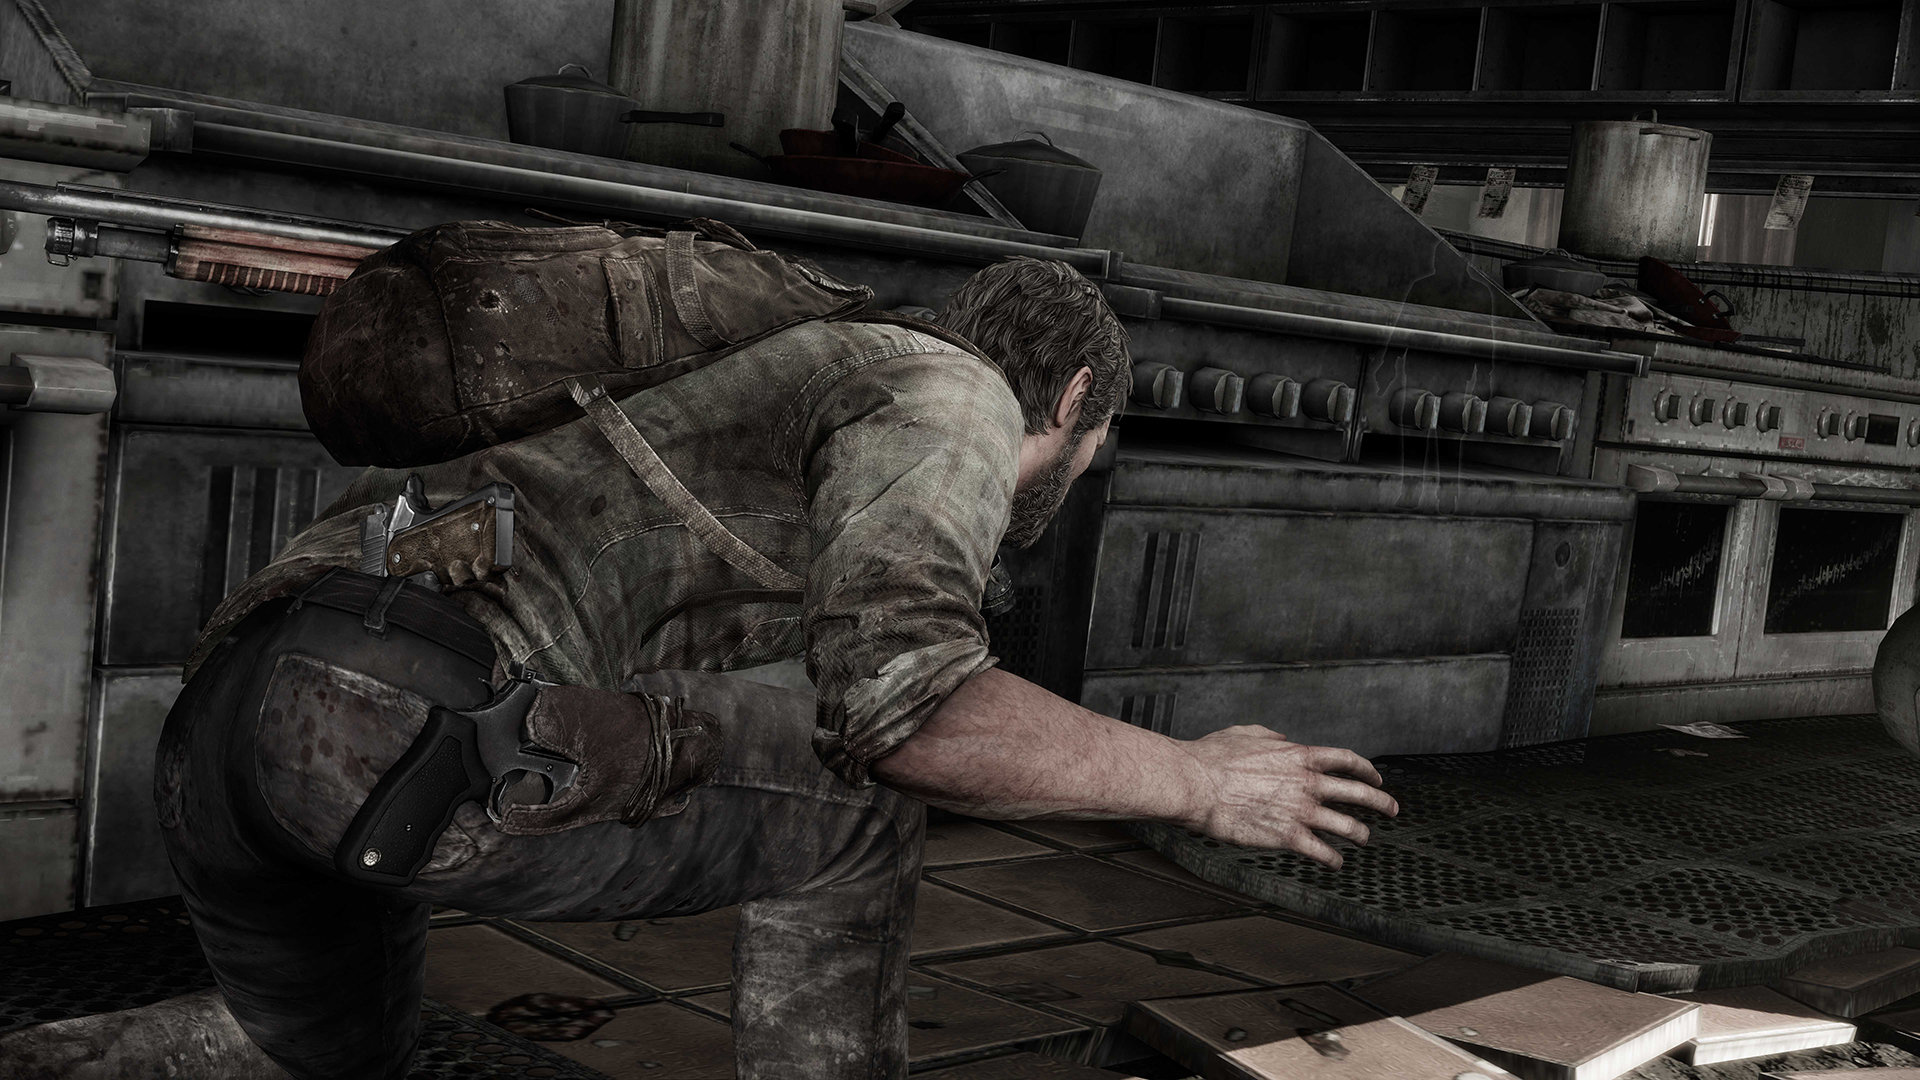 [Jeu Vidéo] The Last of Us The-last-of-us-remastered-screen-13-ps4-us-28jul14?$MediaCarousel_Original$